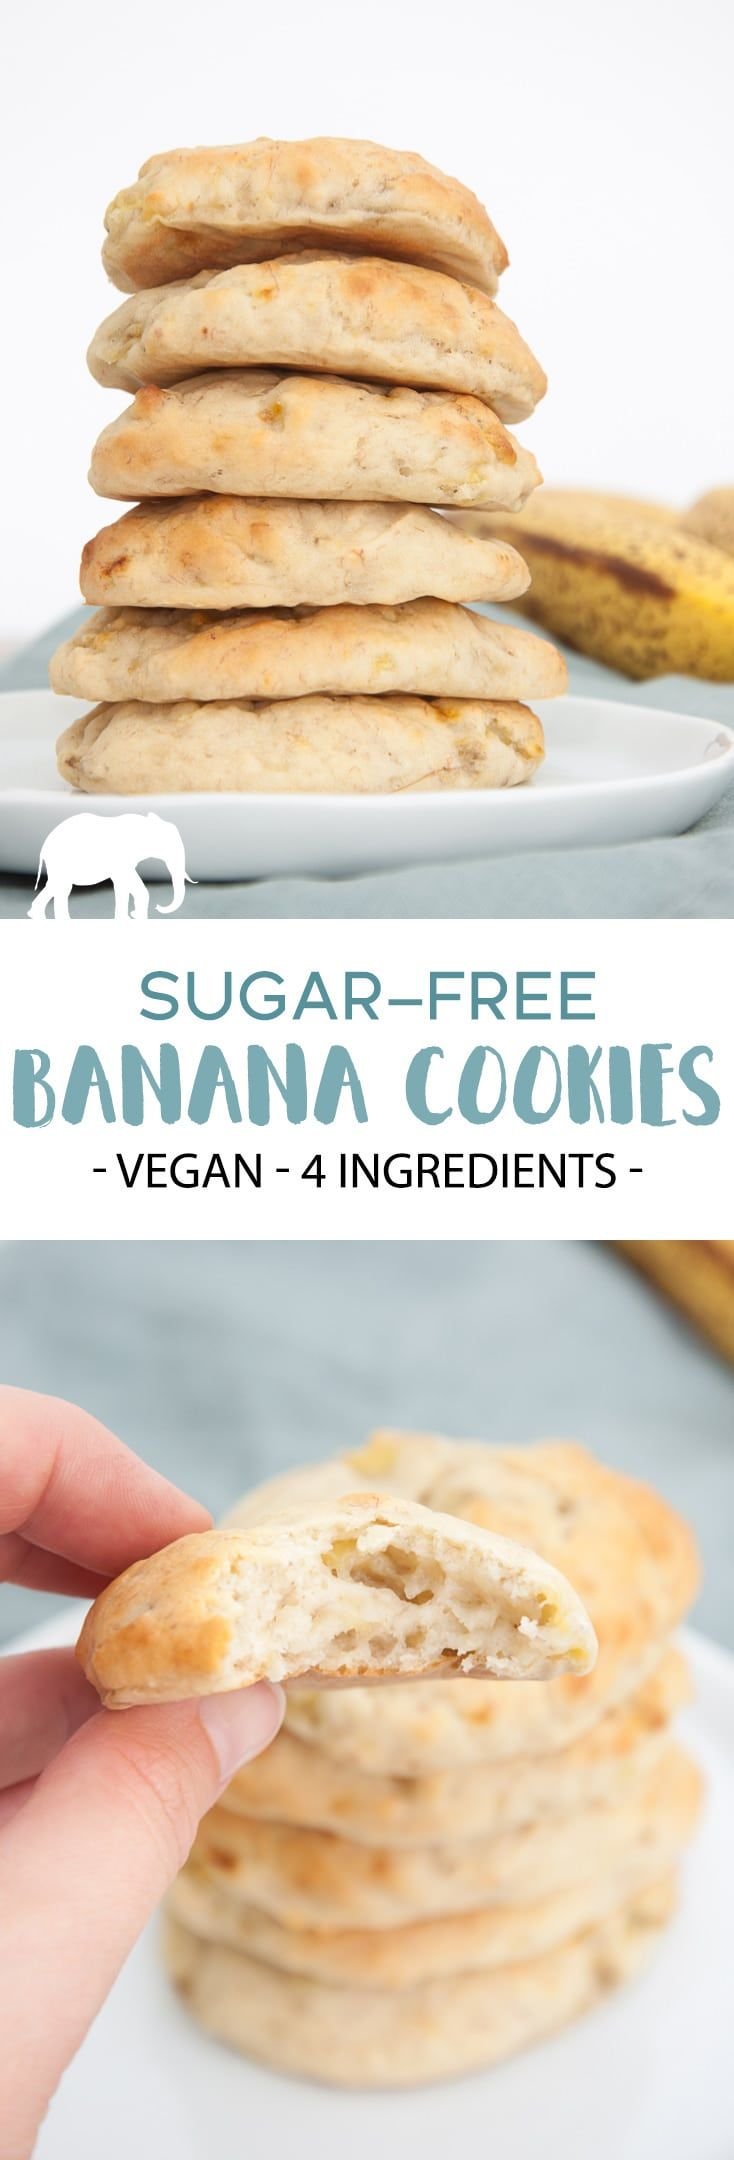 Sugar-Free Banana Cookies Recipe | Elephantastic Vegan #sugarfree